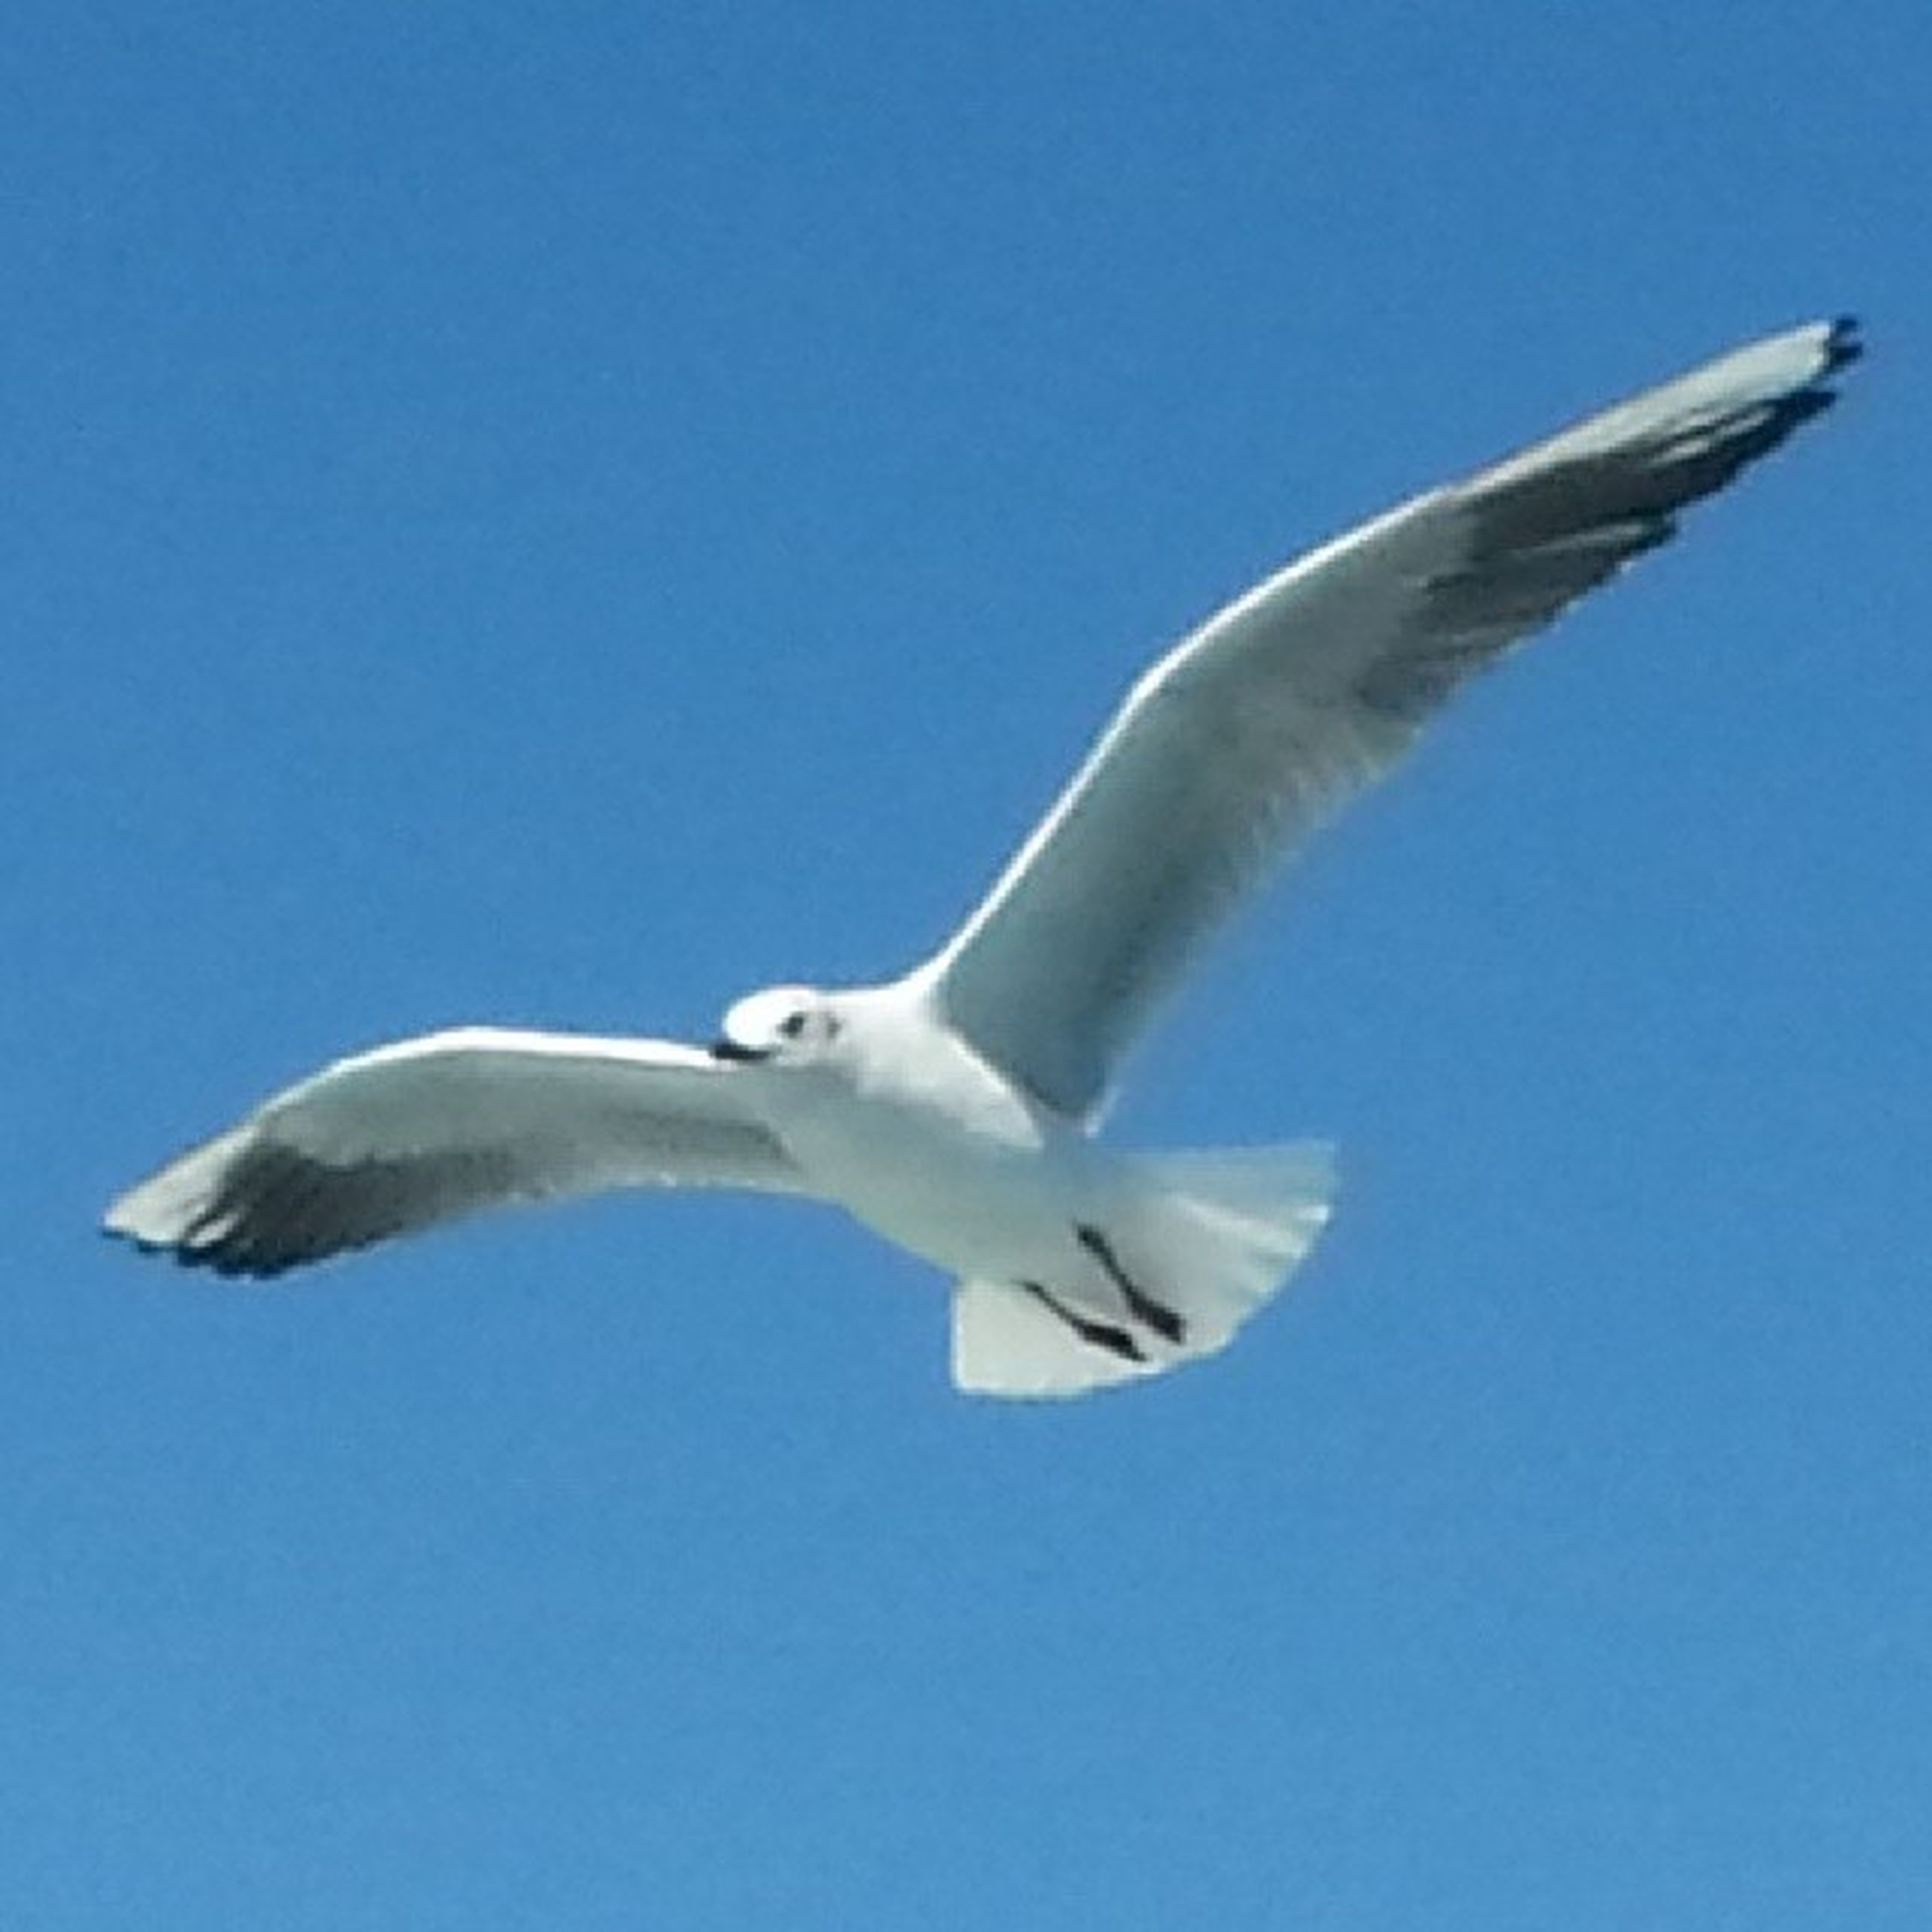 flying, spread wings, bird, animal themes, blue, mid-air, animals in the wild, low angle view, clear sky, seagull, wildlife, one animal, copy space, motion, flight, on the move, day, animal wing, nature, sky